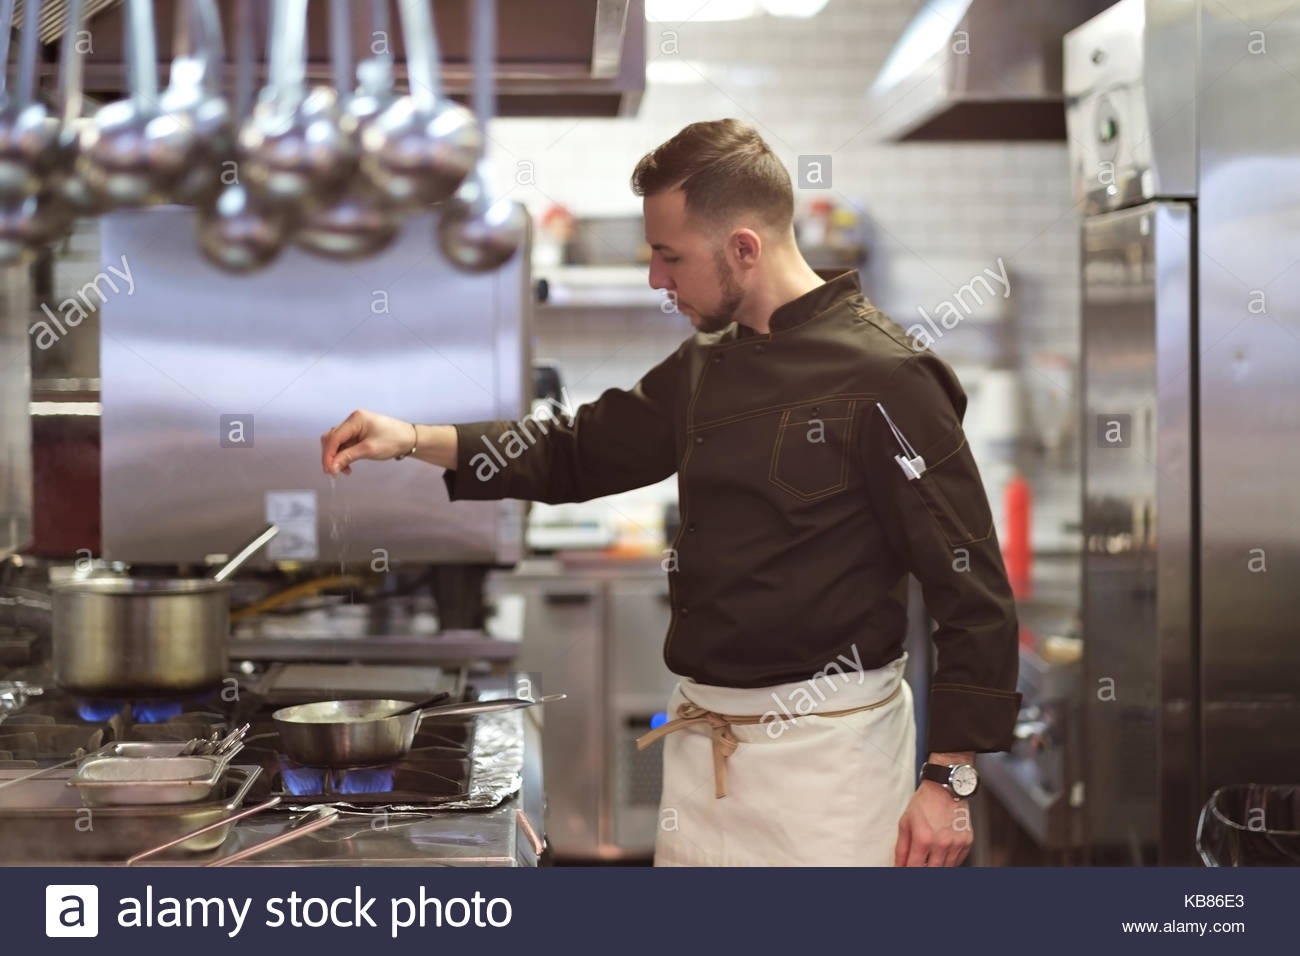 Food concept. A young cook stands in the kitchen and prepares a dish - Stock Image